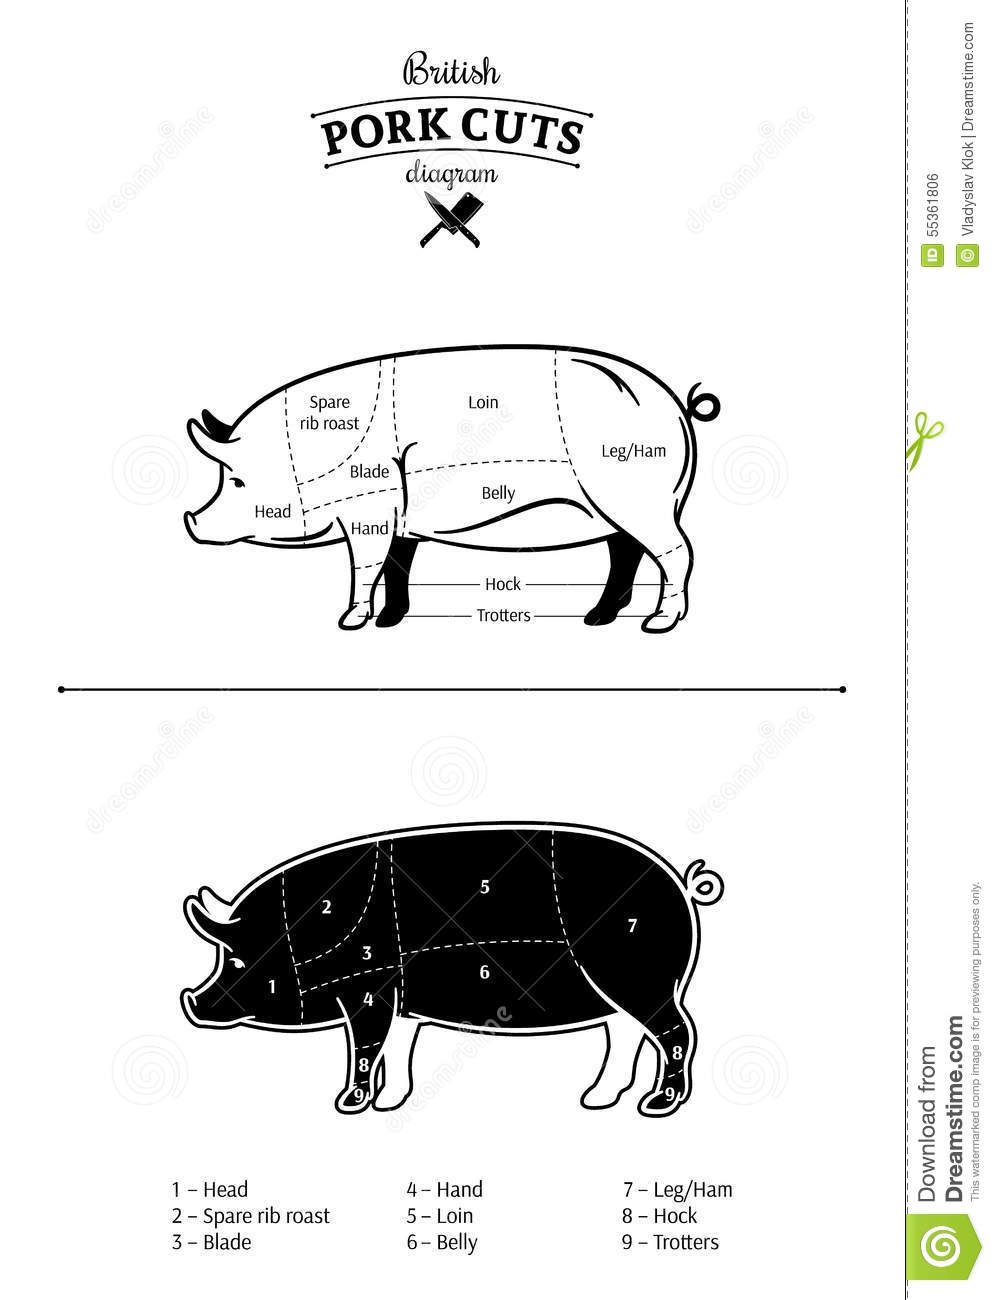 hight resolution of british pork cuts diagram